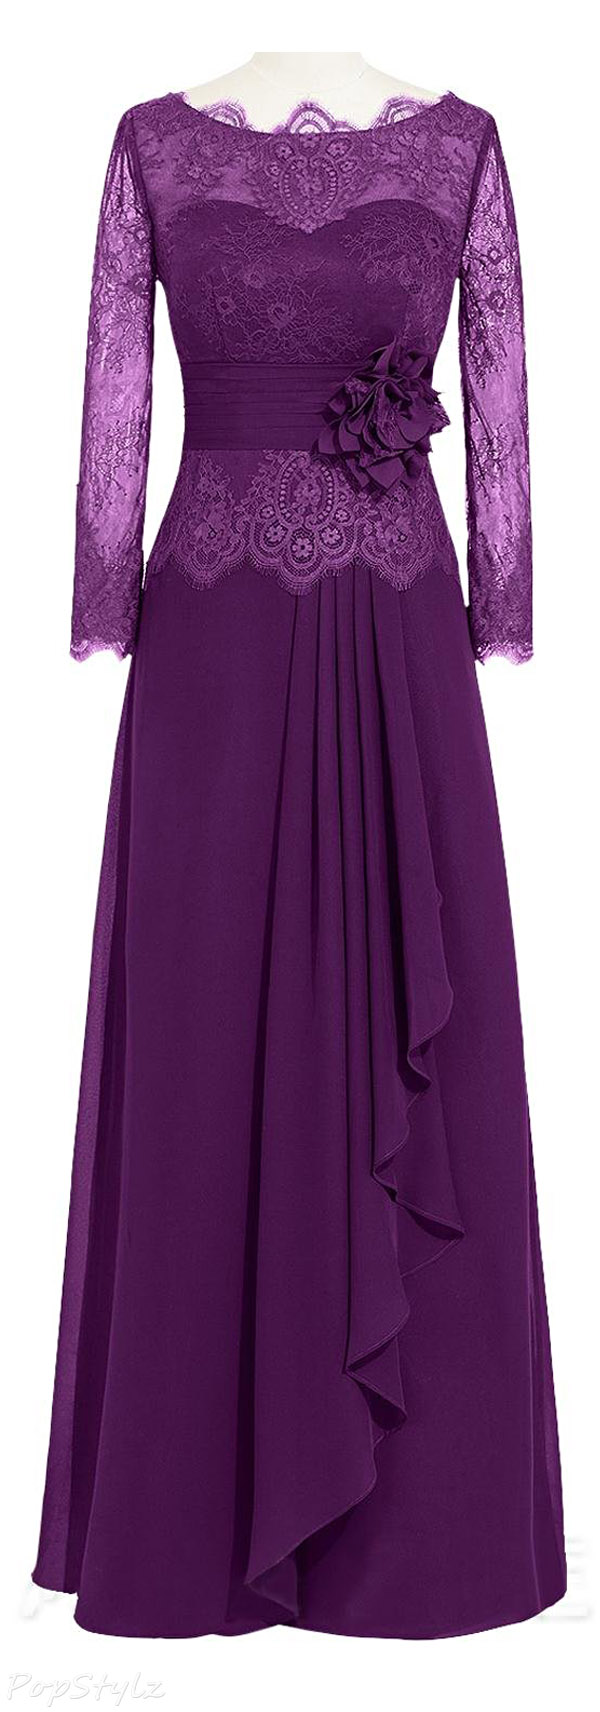 ORIENT BRIDE Lace A-Line Evening Gown